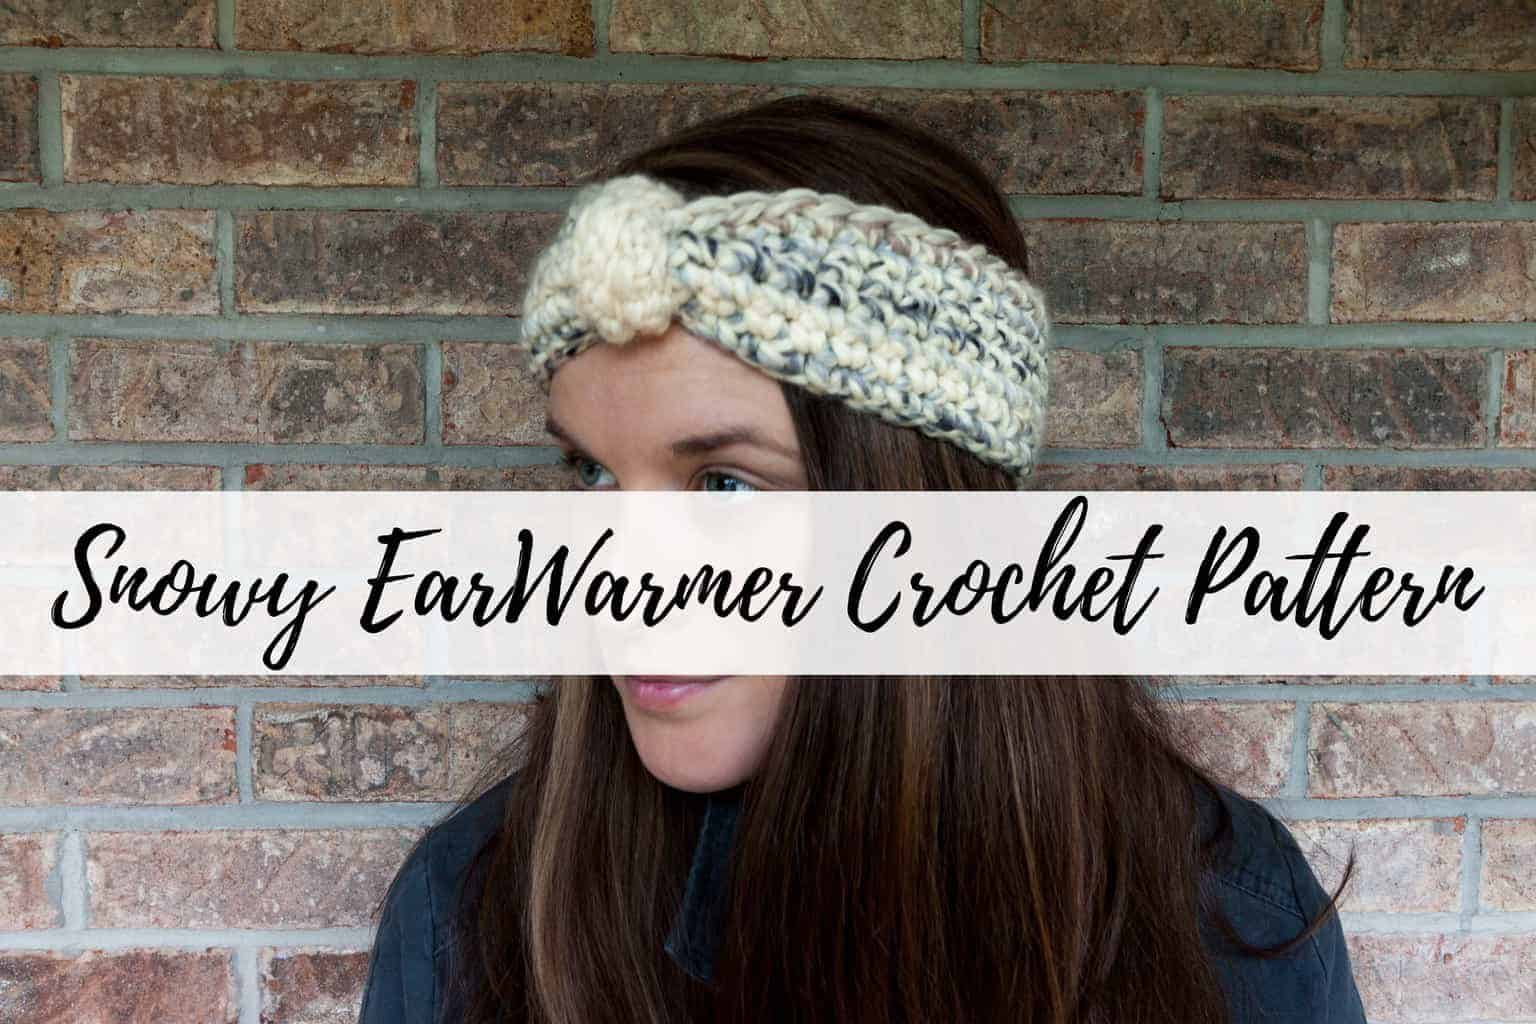 698542d8cc89 Snowy Crochet Earwarmer Pattern by Rescued Paw Designs - Make this easy  beginner friendly pattern today